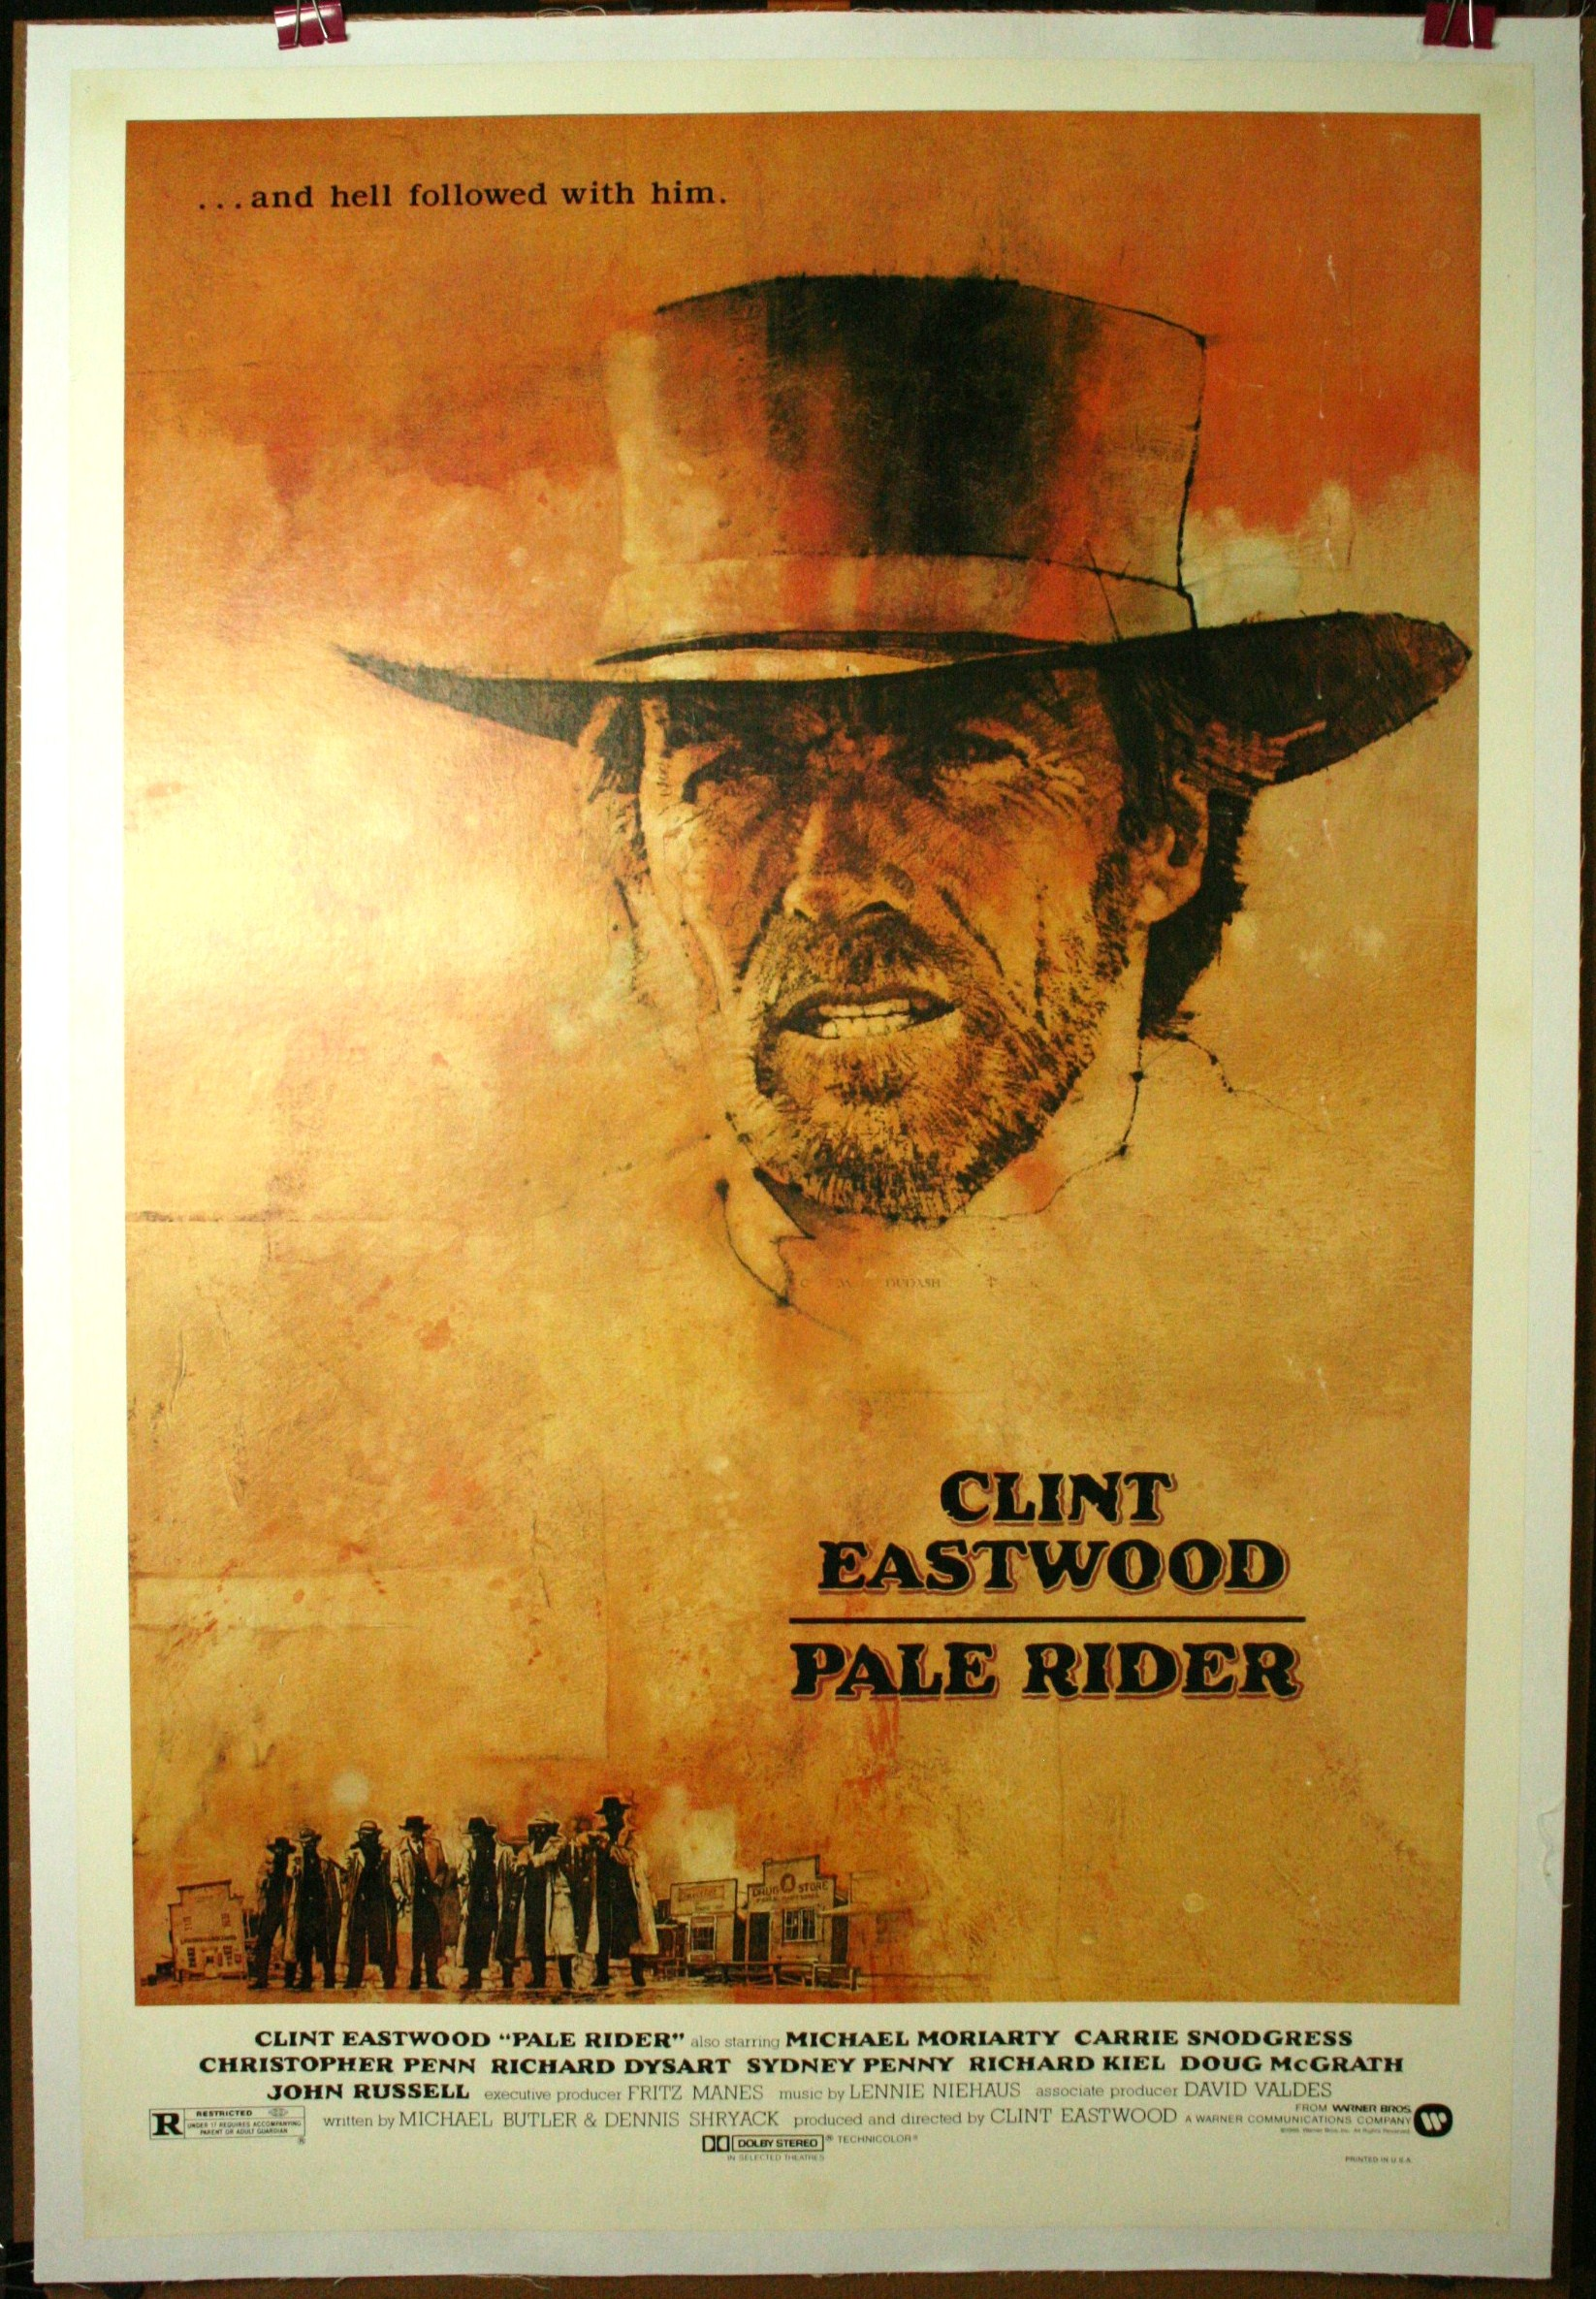 pale rider clint eastwood western poster on linen